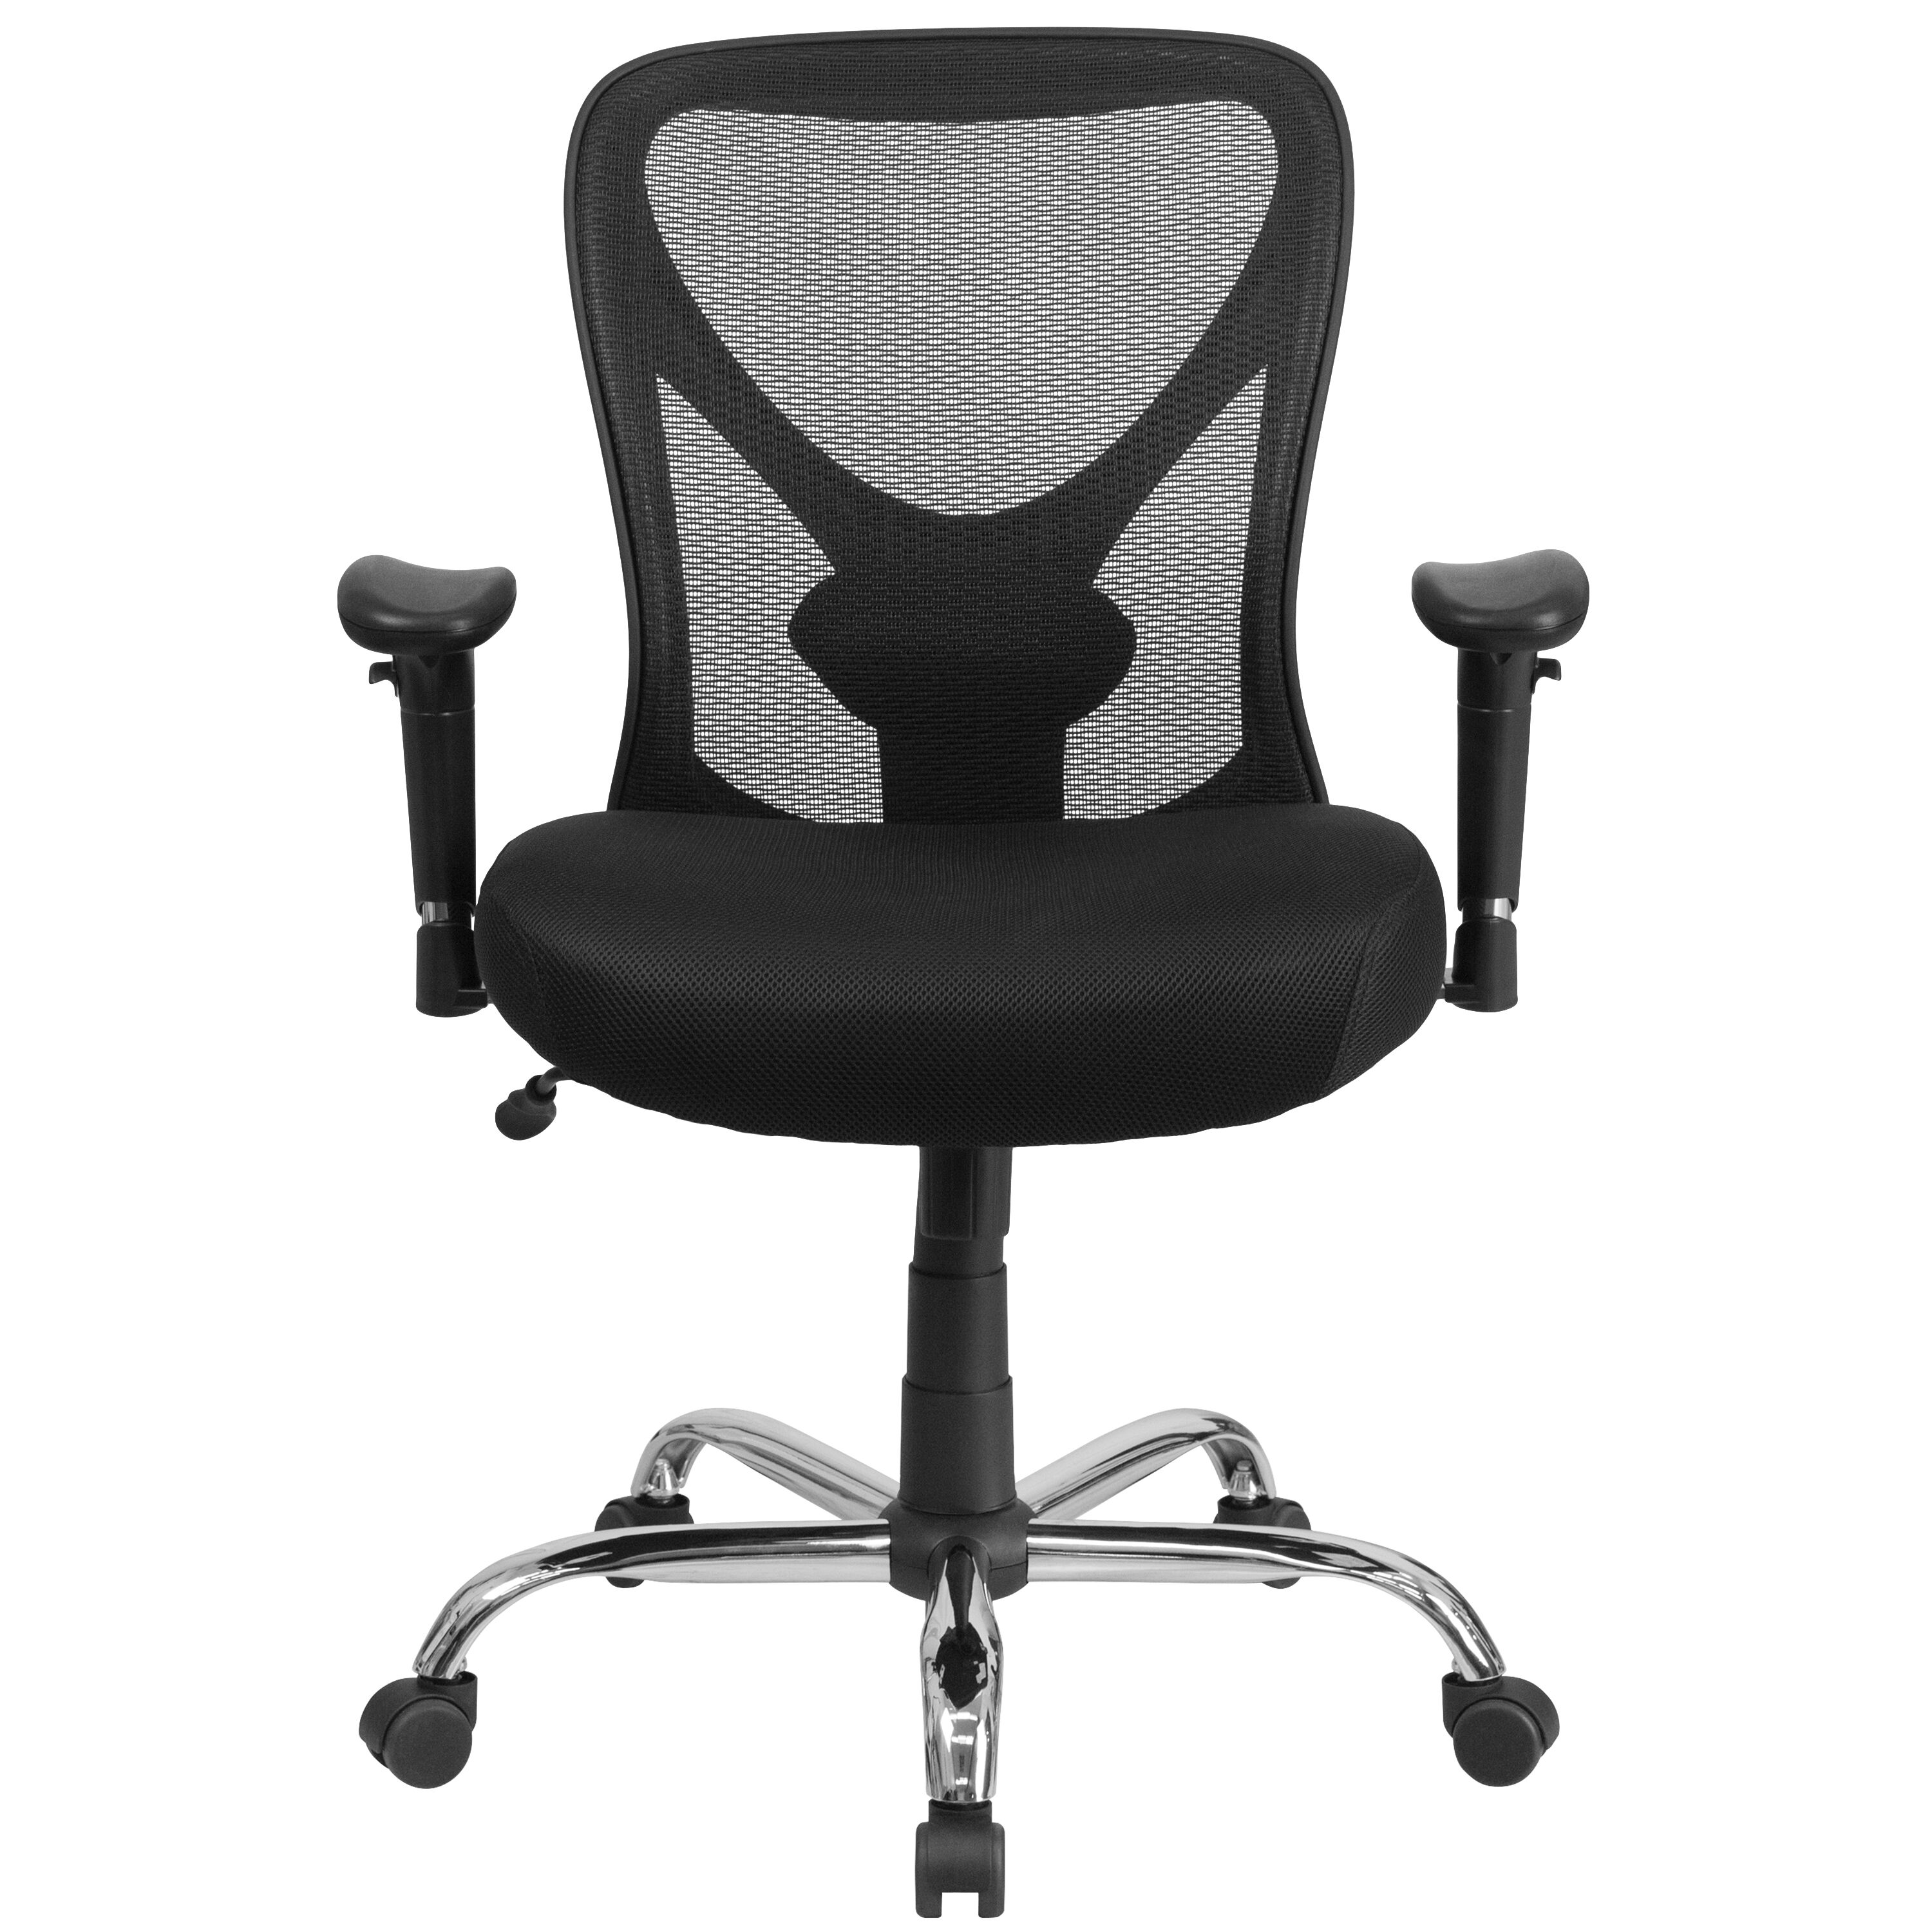 ... Our HERCULES Series Big u0026 Tall 400 lb. Rated Black Mesh Swivel Task Chair with  sc 1 st  Bizchair.com & Black 400LB Mid-Back Chair GO-2032-GG | Bizchair.com